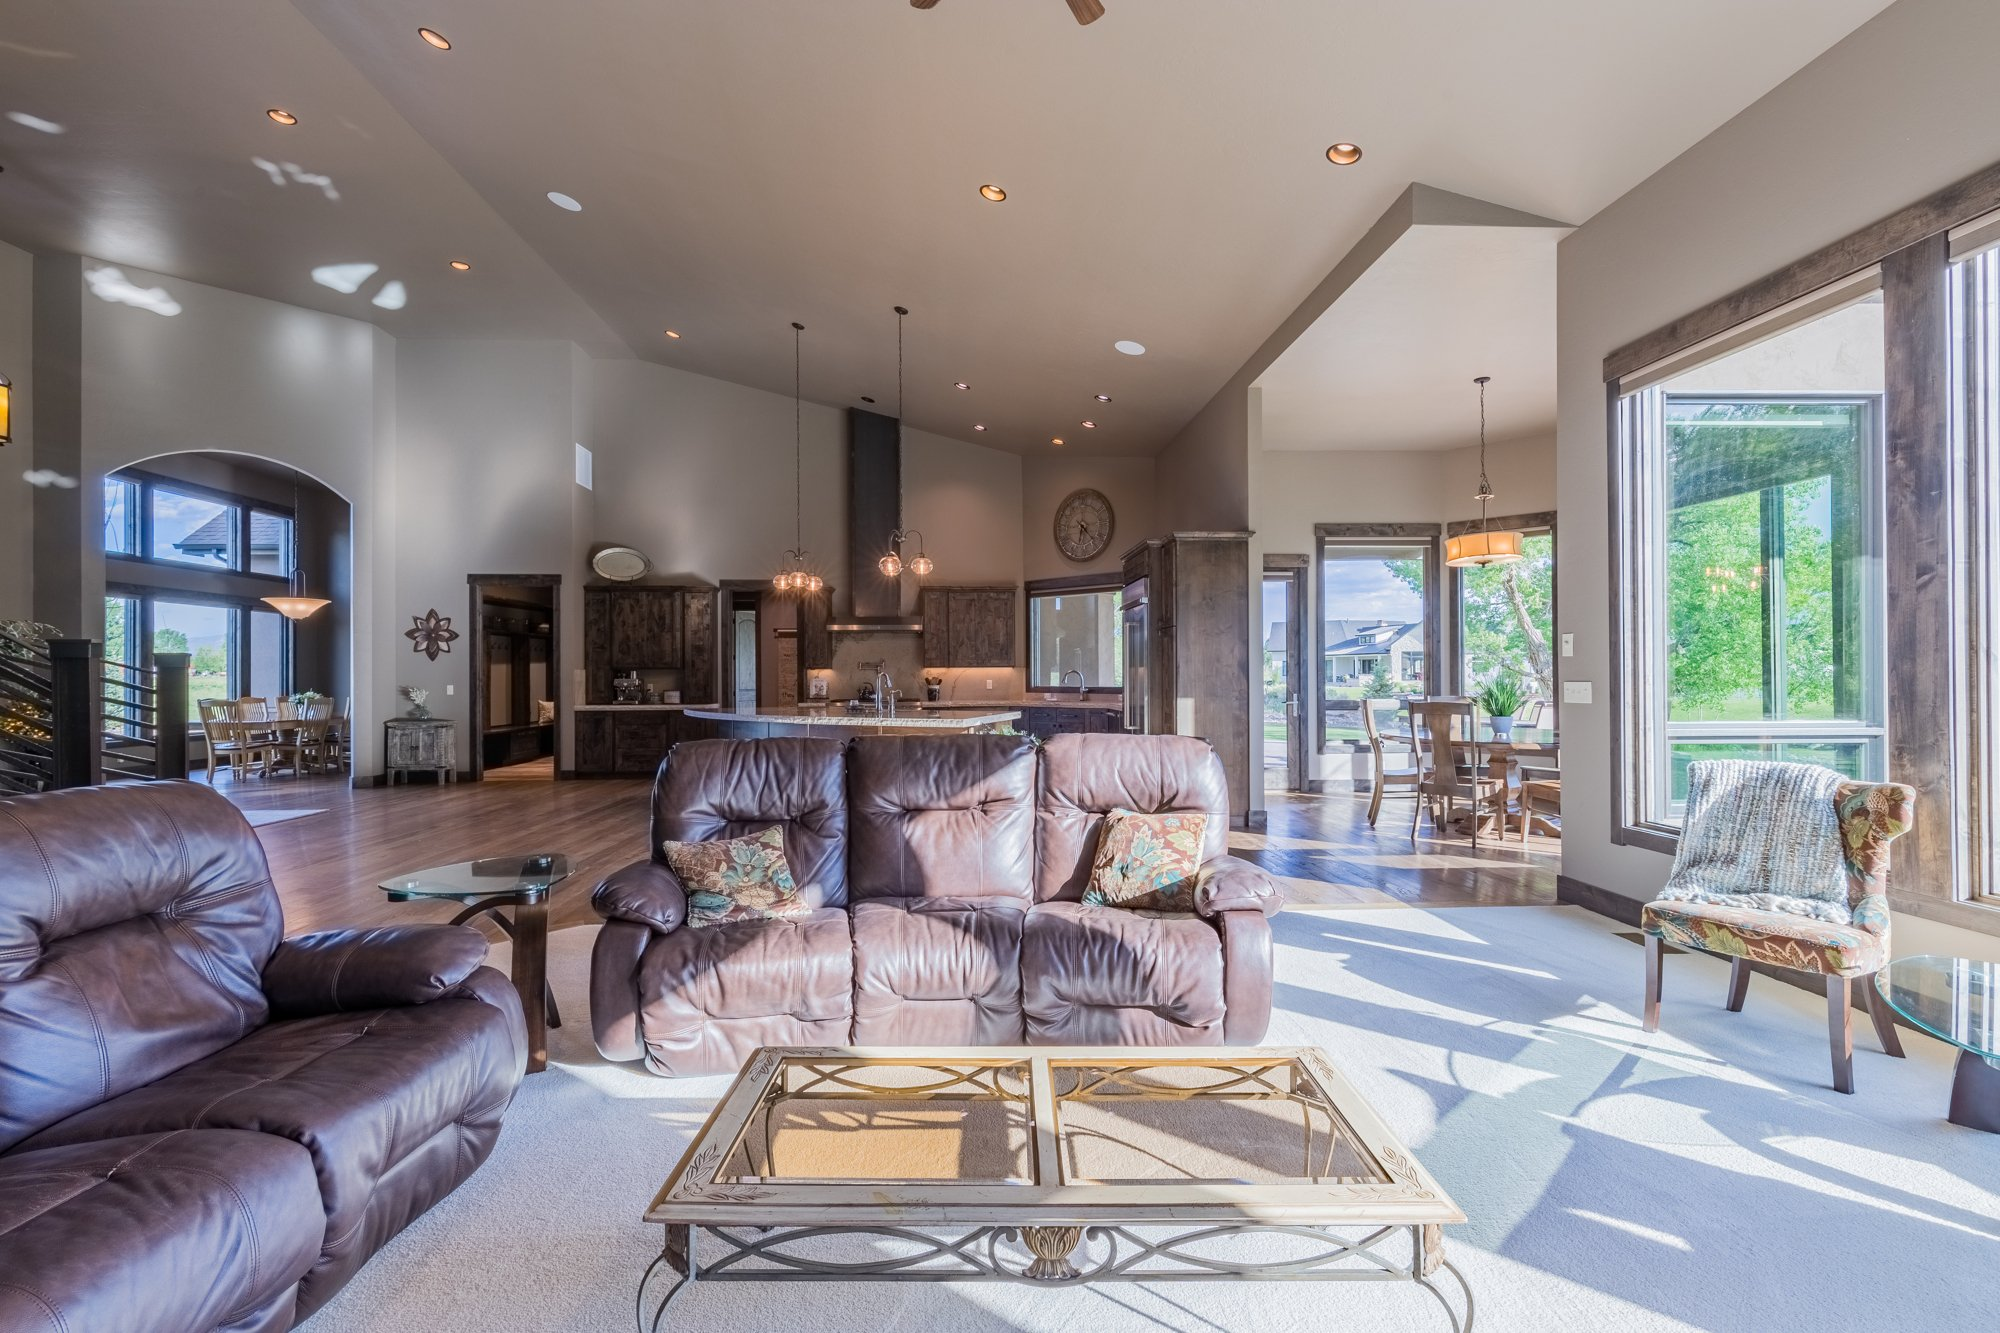 Open Concept Living - 15067 6140 Ln Montrose, CO 81403 - Atha Team Luxury Real Estate